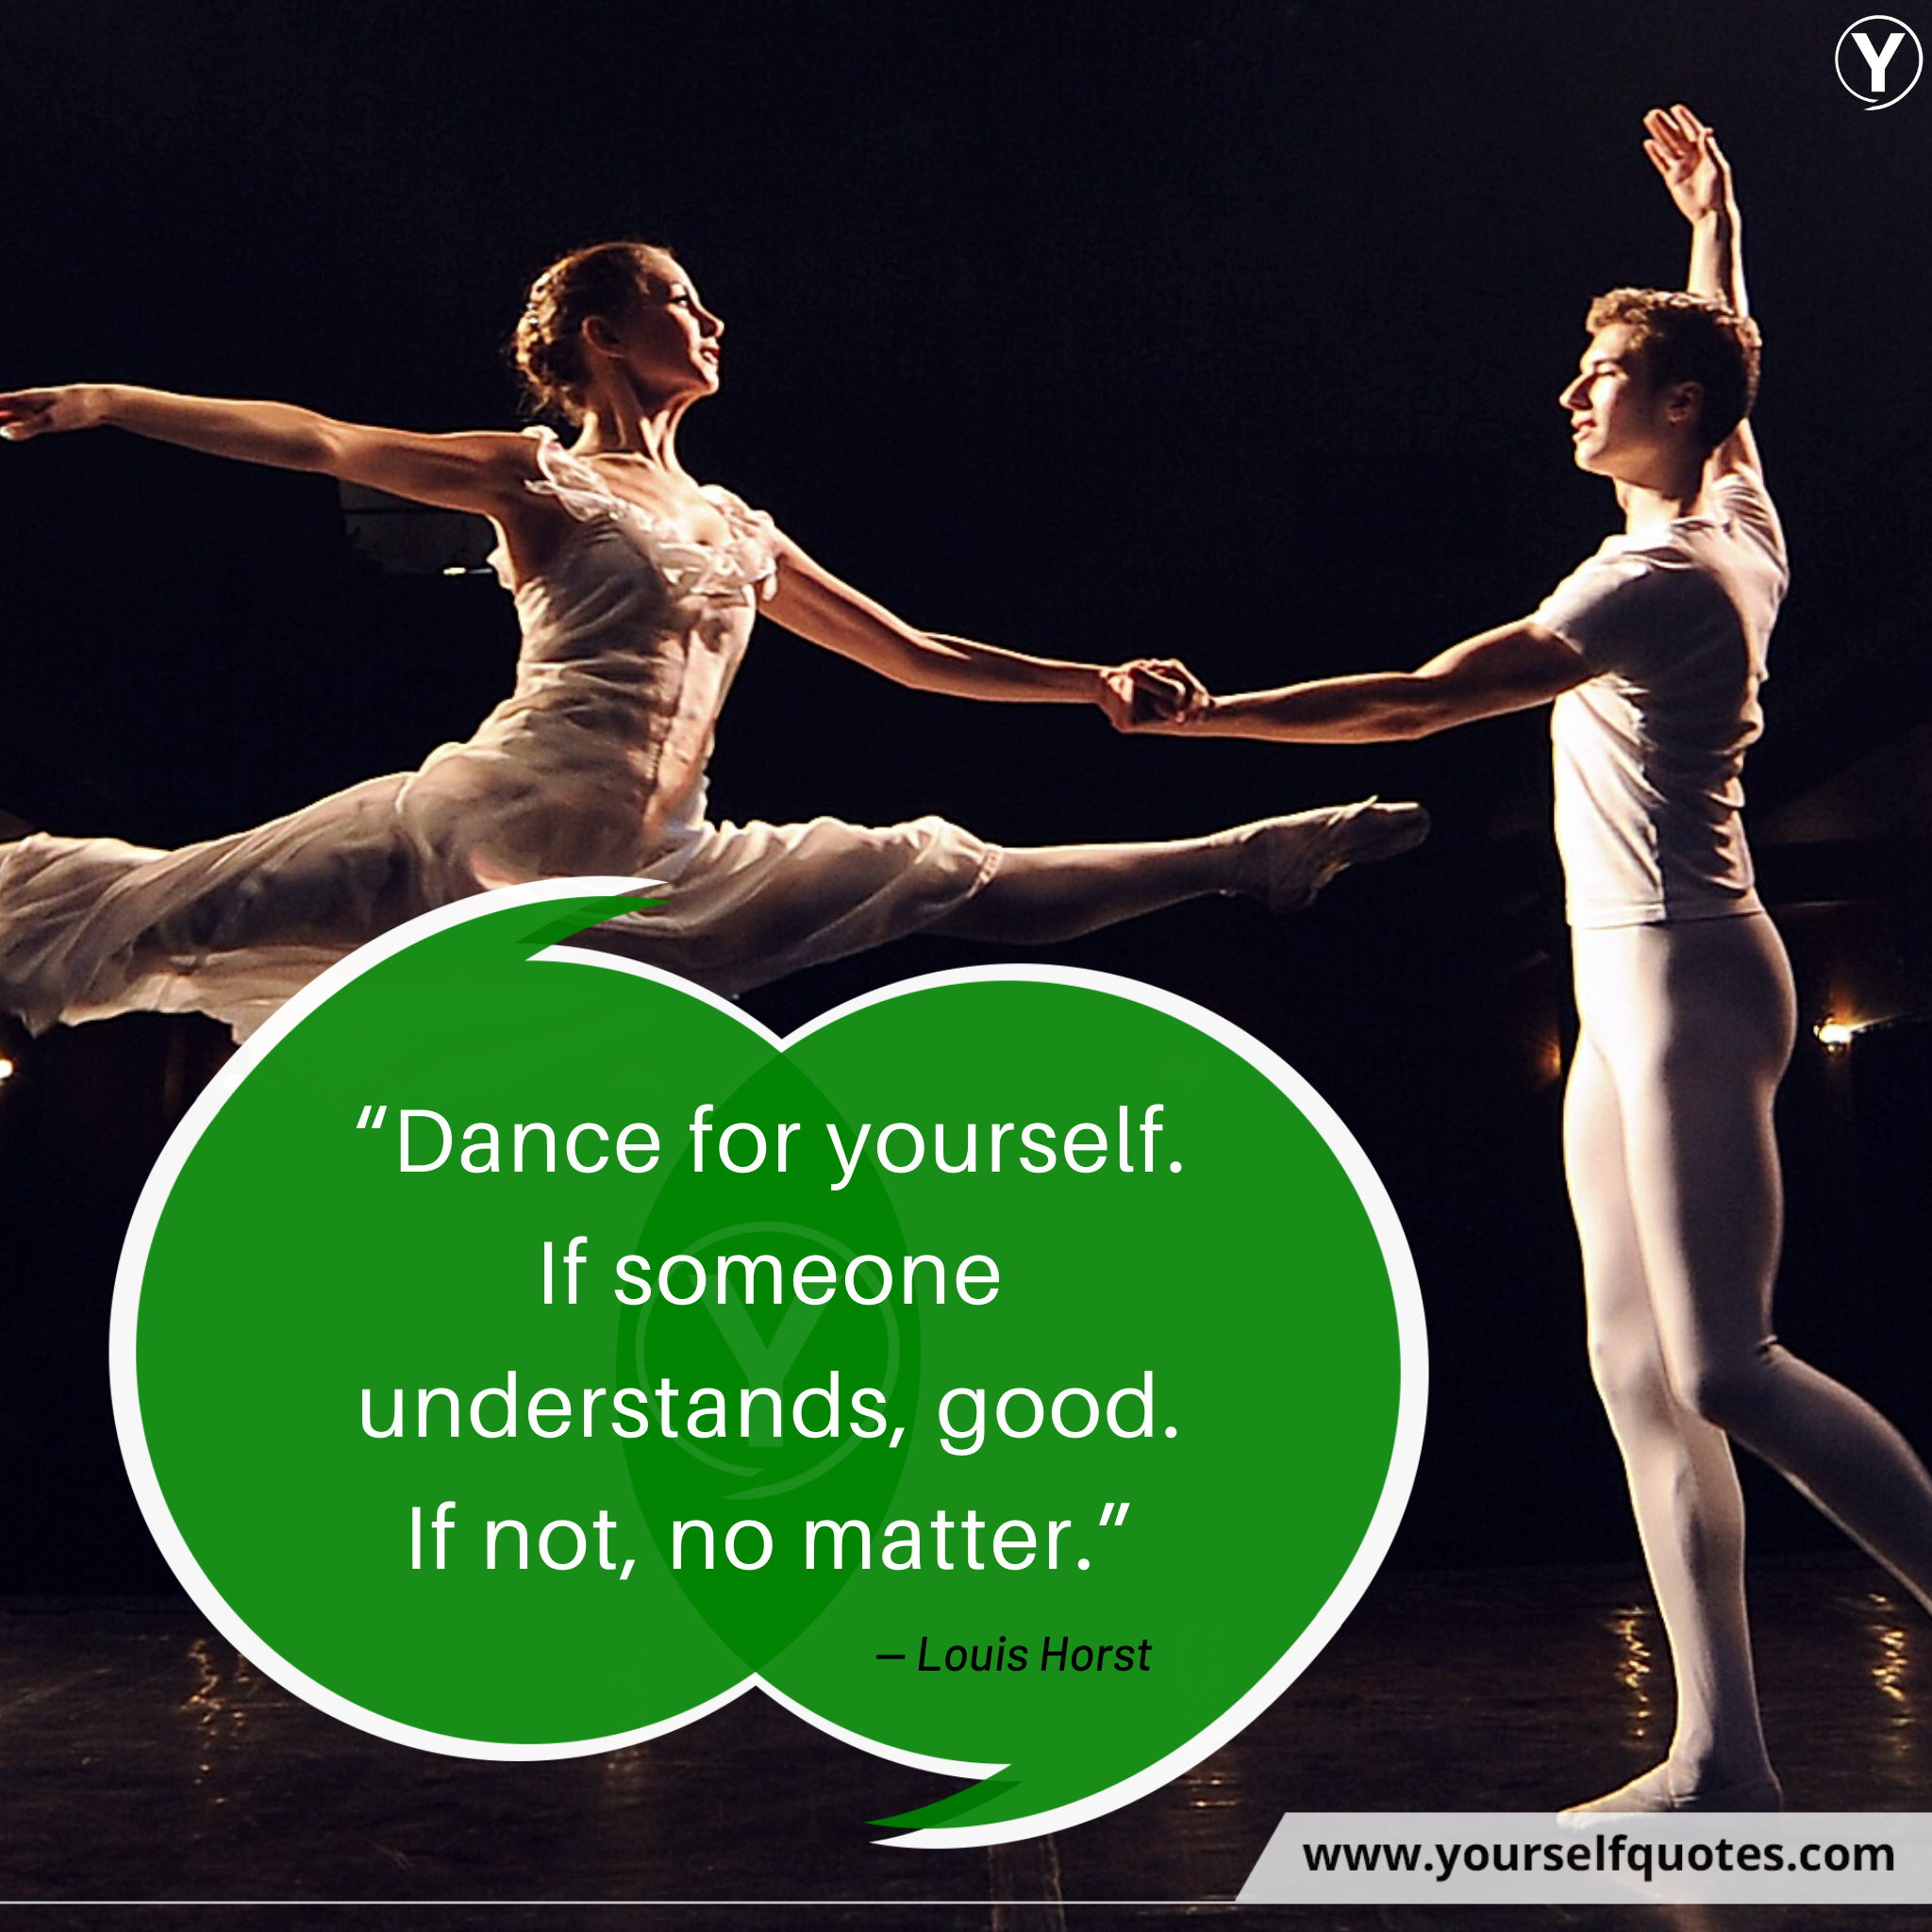 Quotes On Dance Day Images